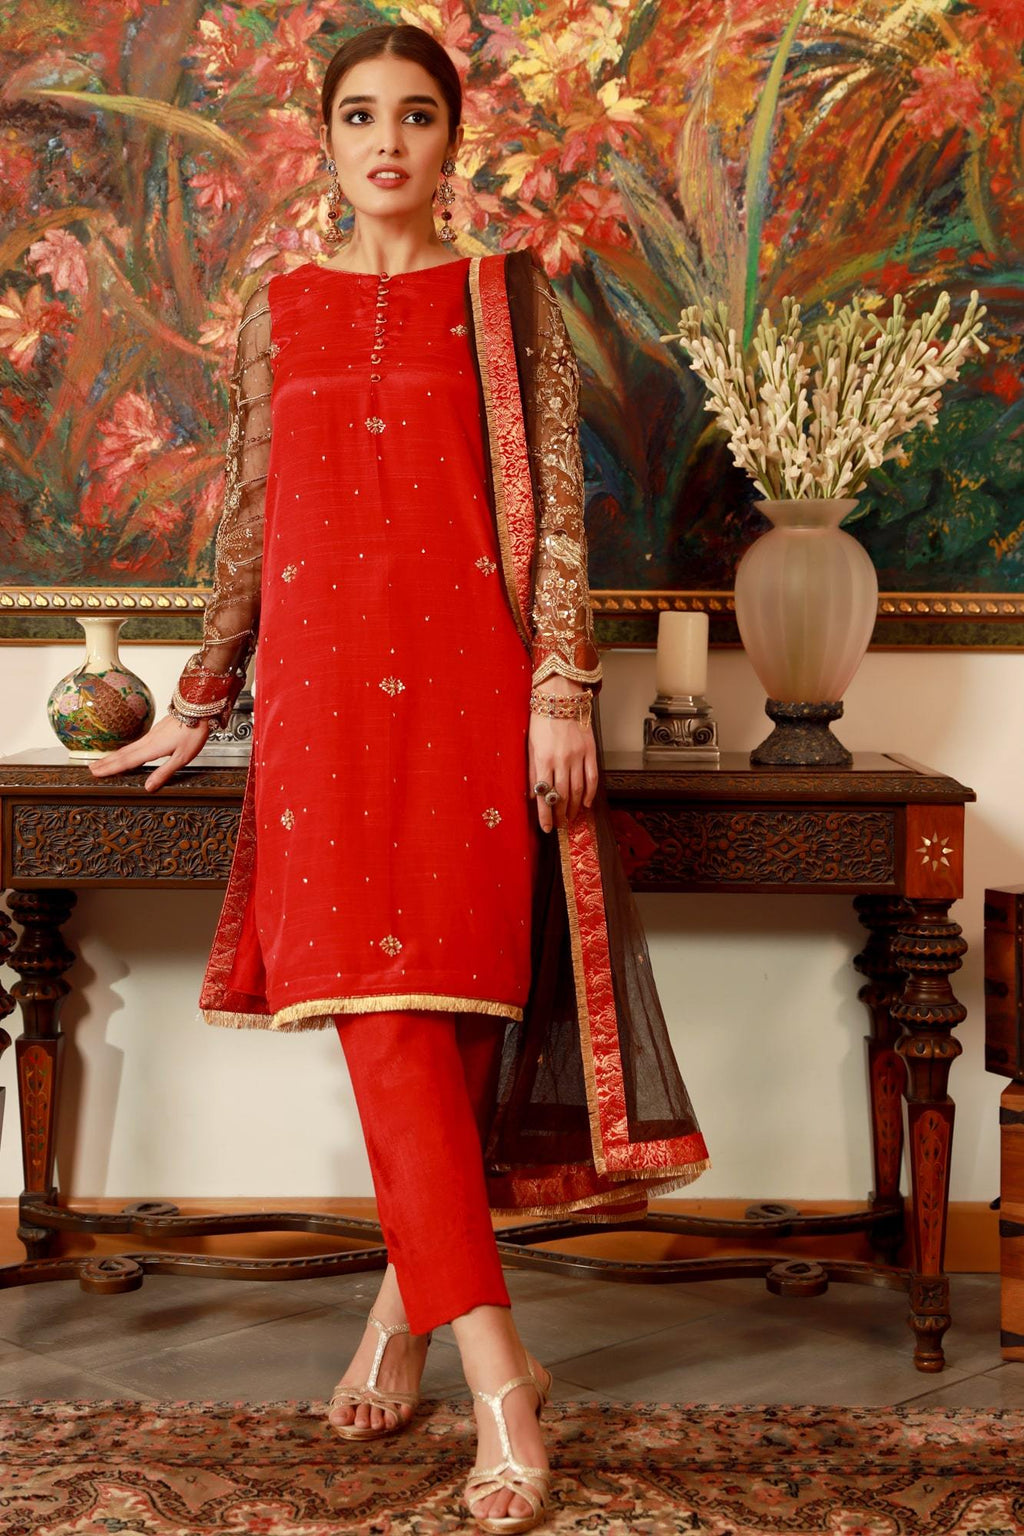 pakistan ready to wear raw silk dress